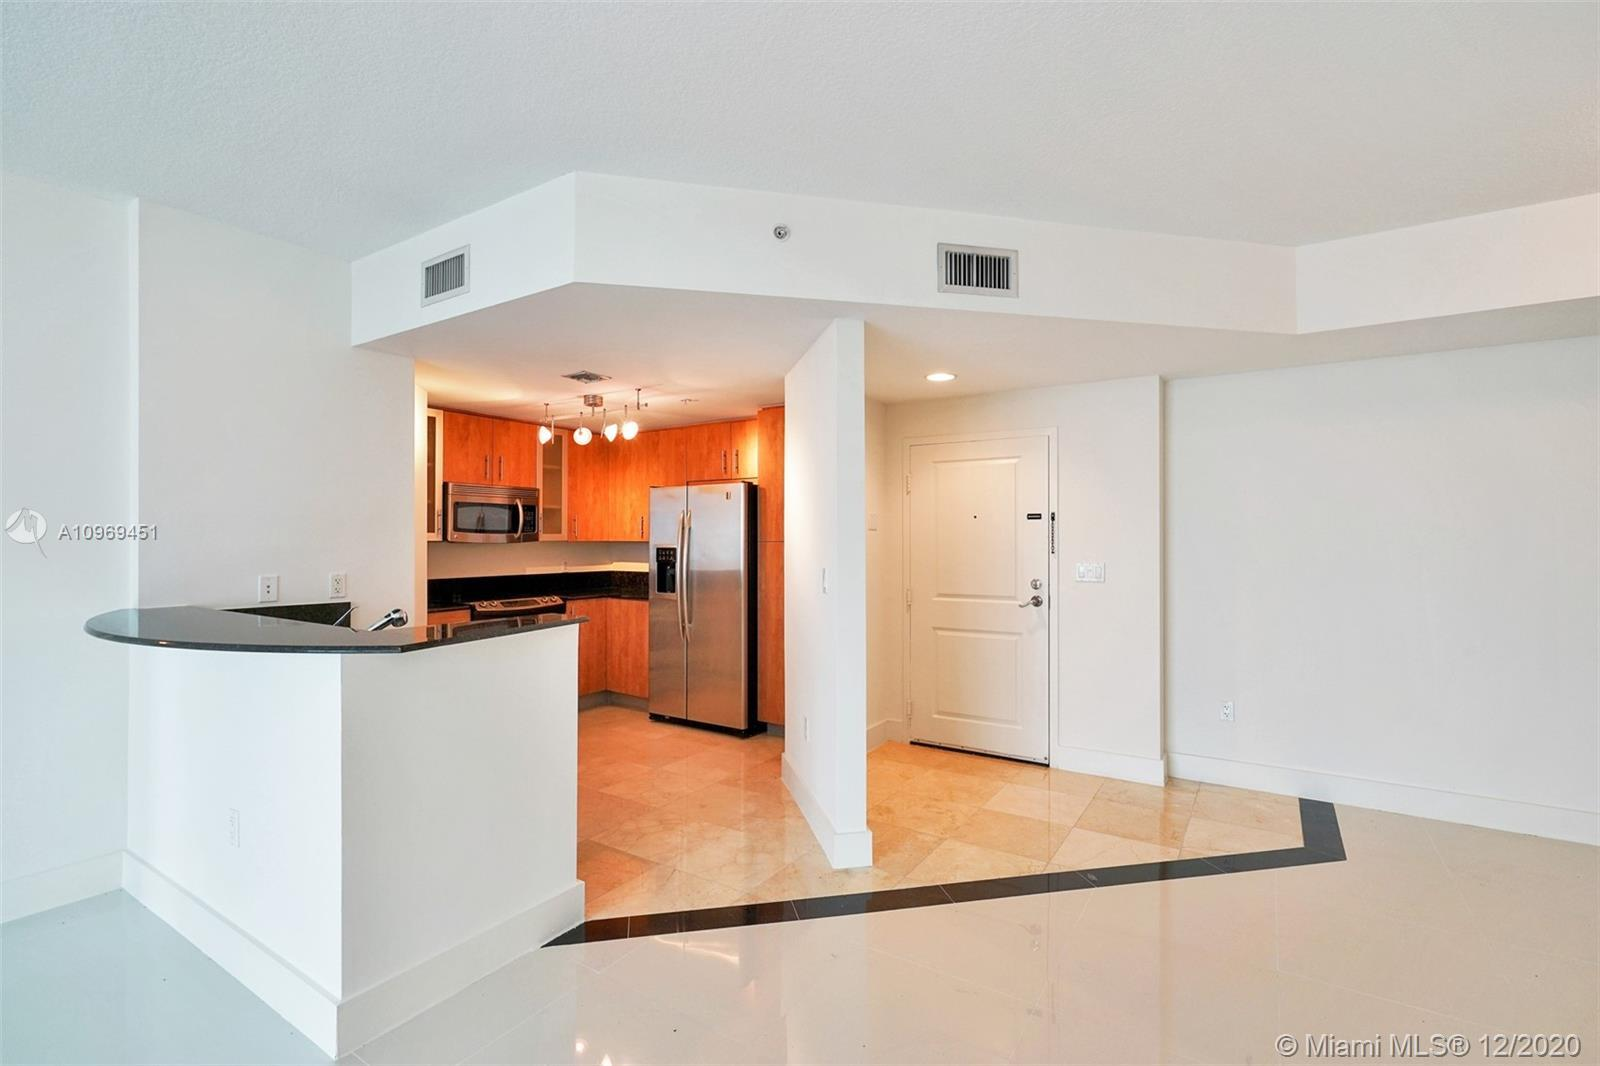 Amazing residence for sale! Just painted and ready for you! Enjoy beautiful tiled floors throughout,